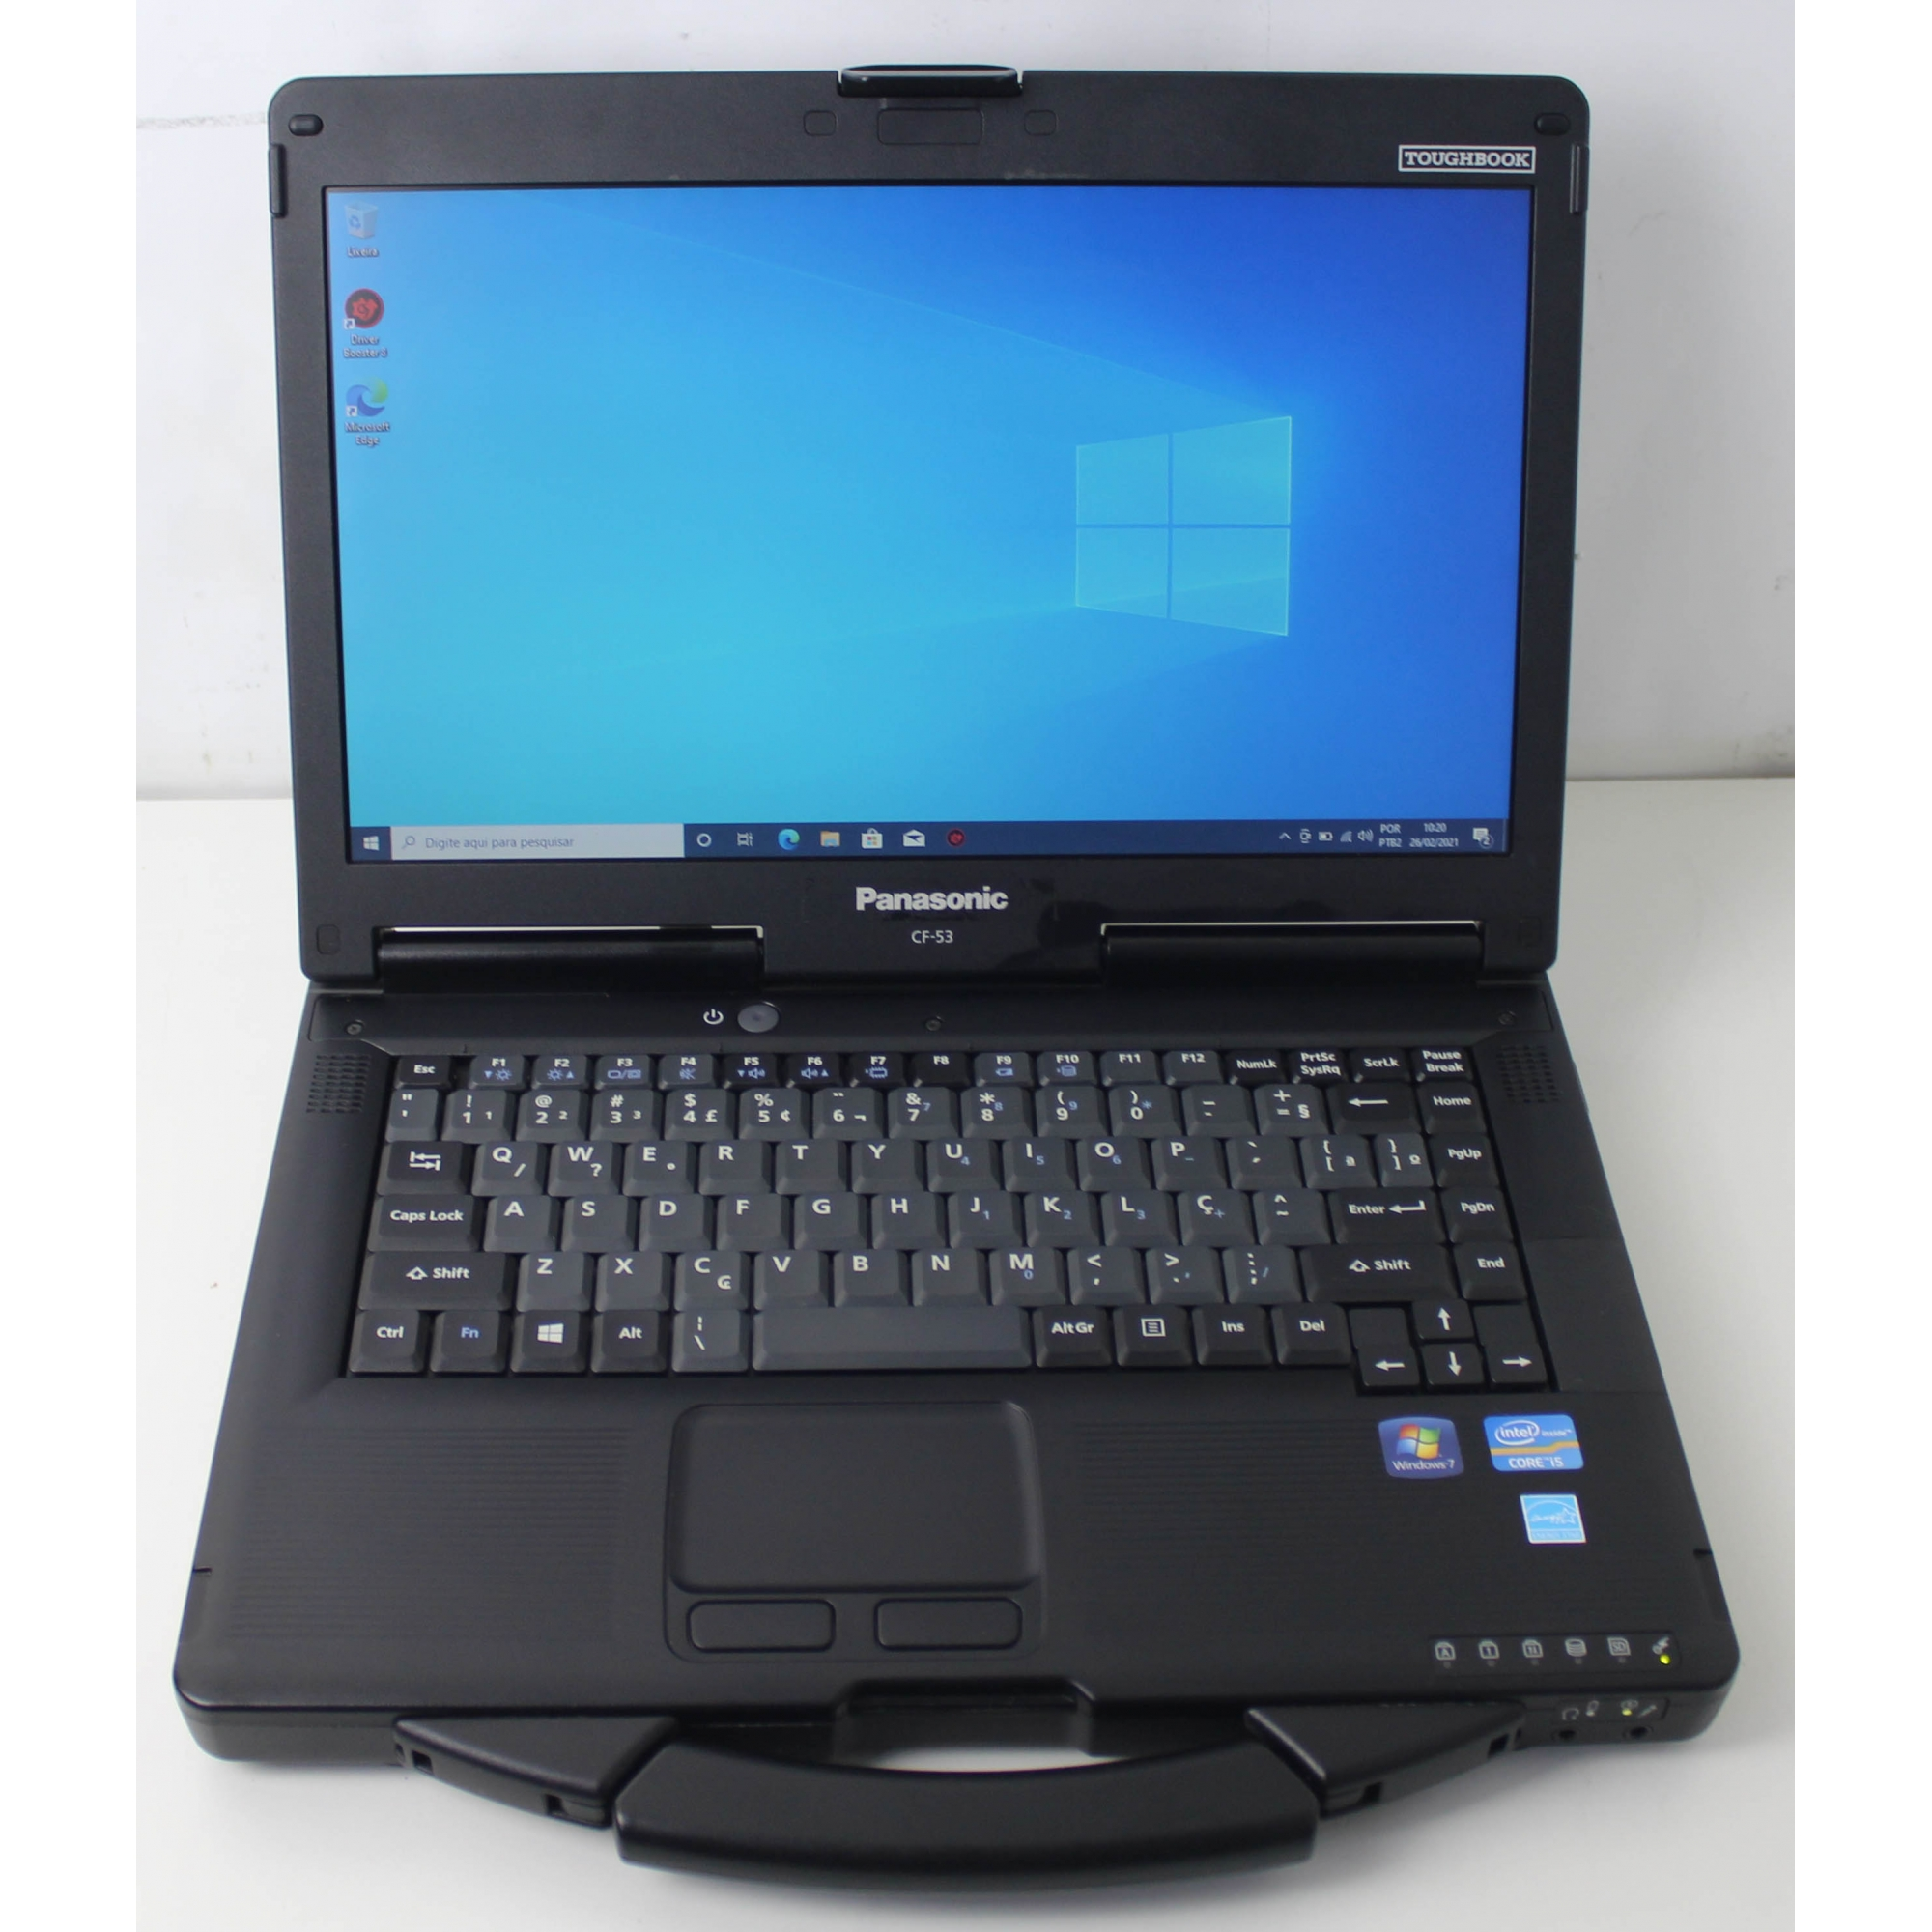 "Notebook Panasonic Toughbook CF-53 14"" Intel Core i5 2.6GHz 8GB SSD-256GB"